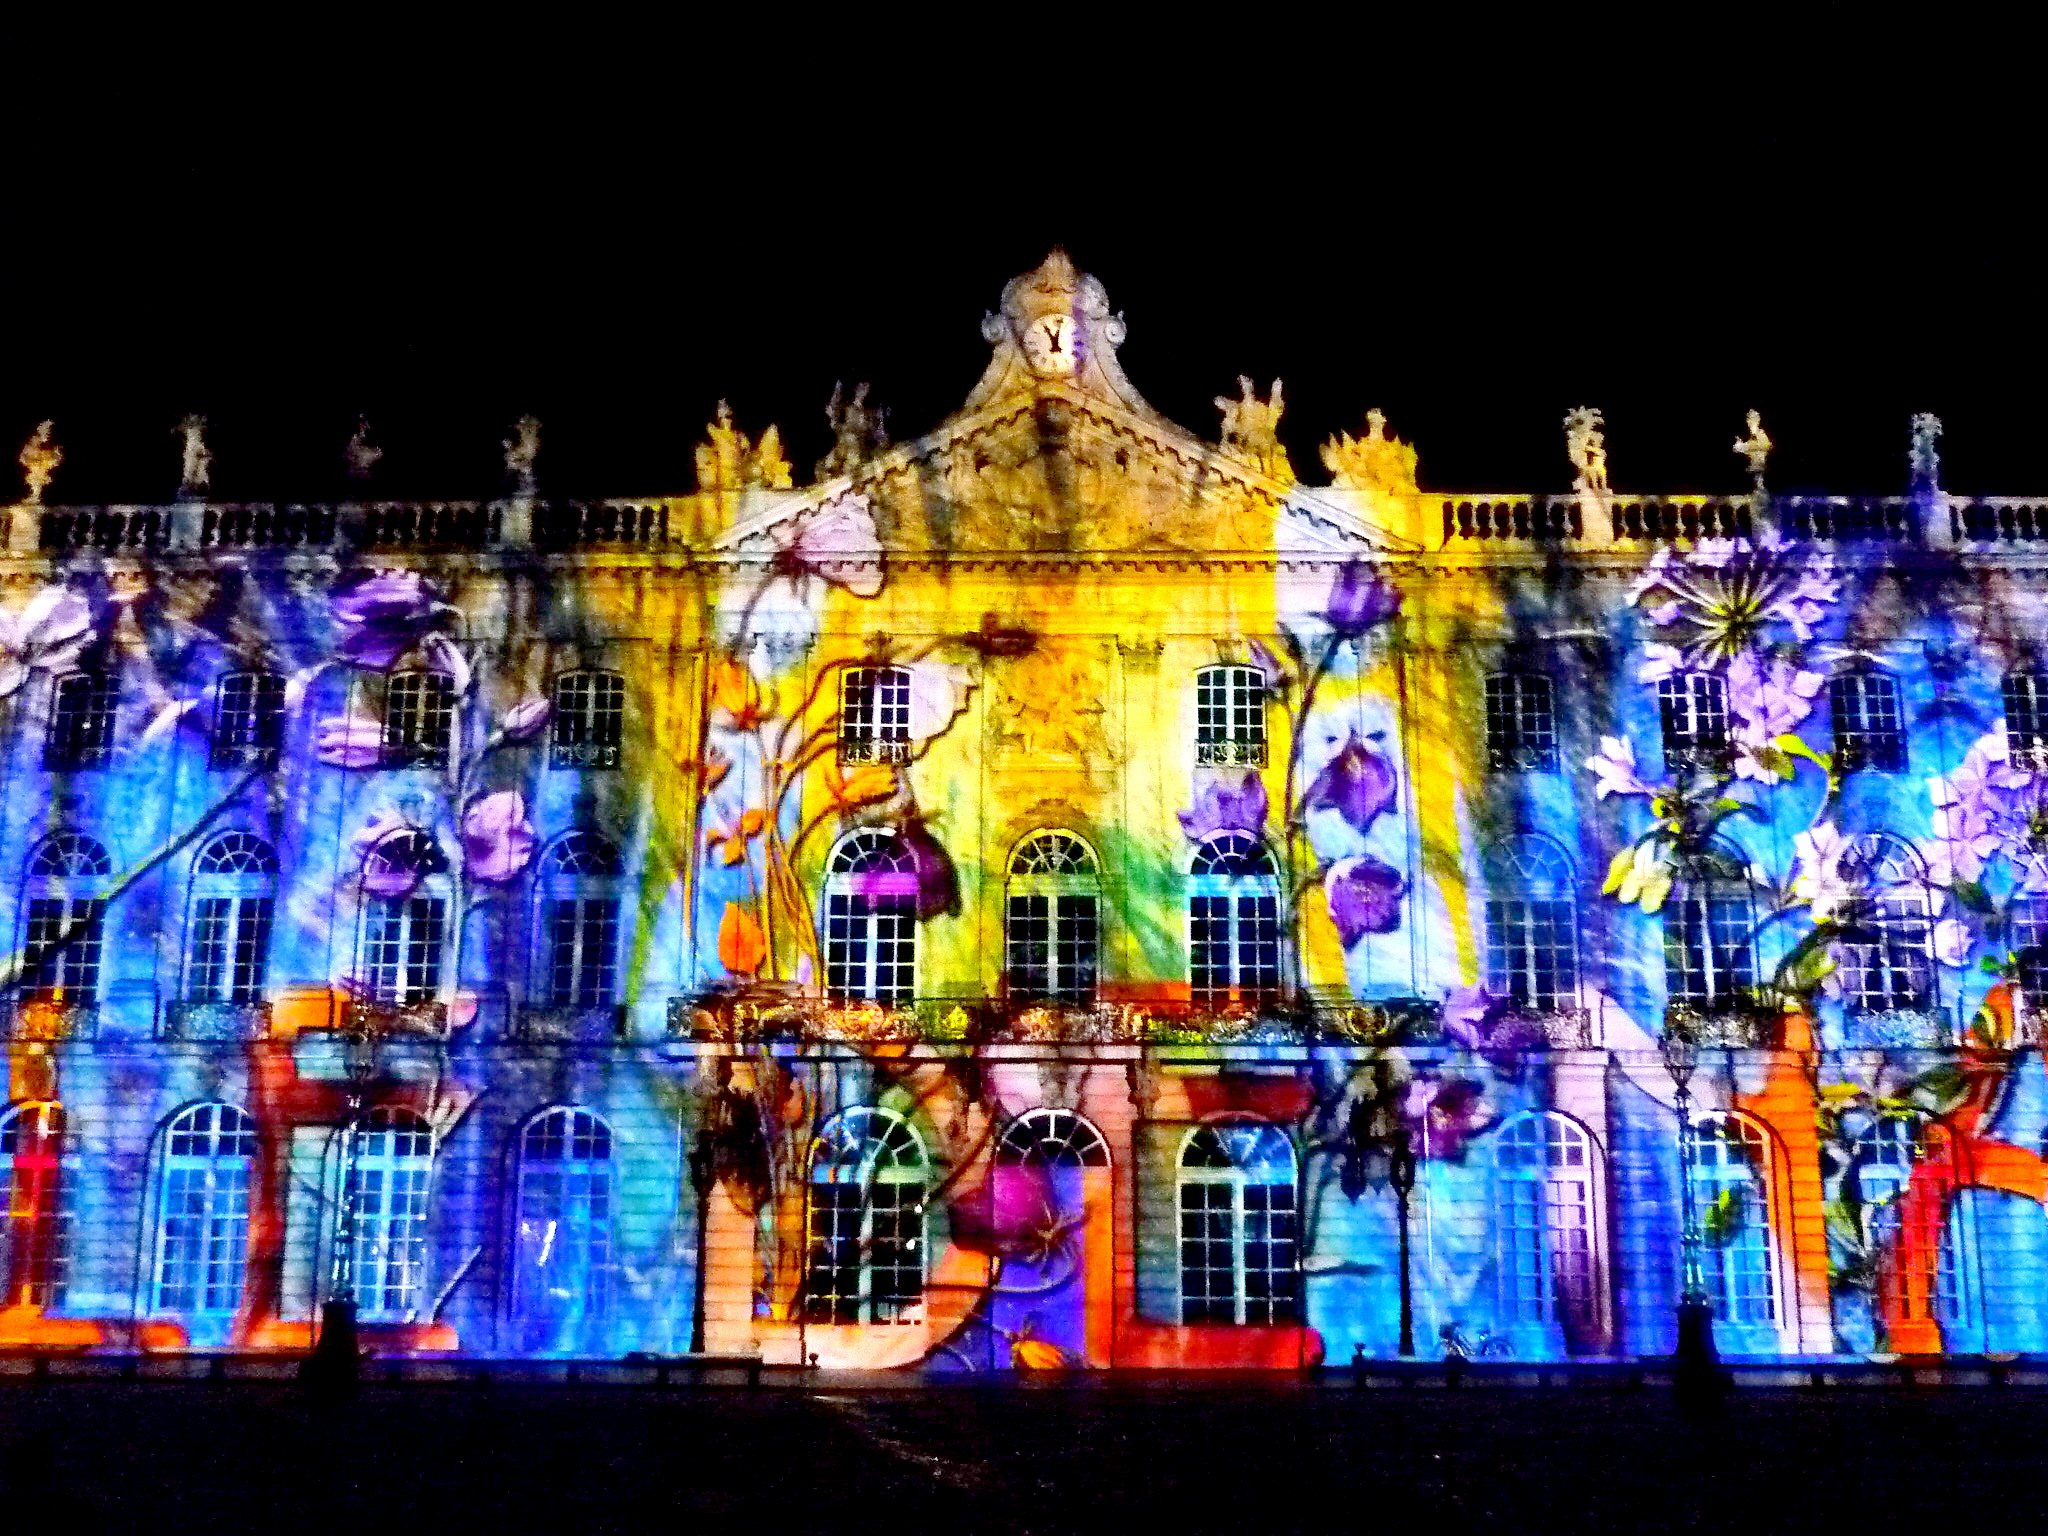 Light Show on Place Stanislas, Nancy © French Moments